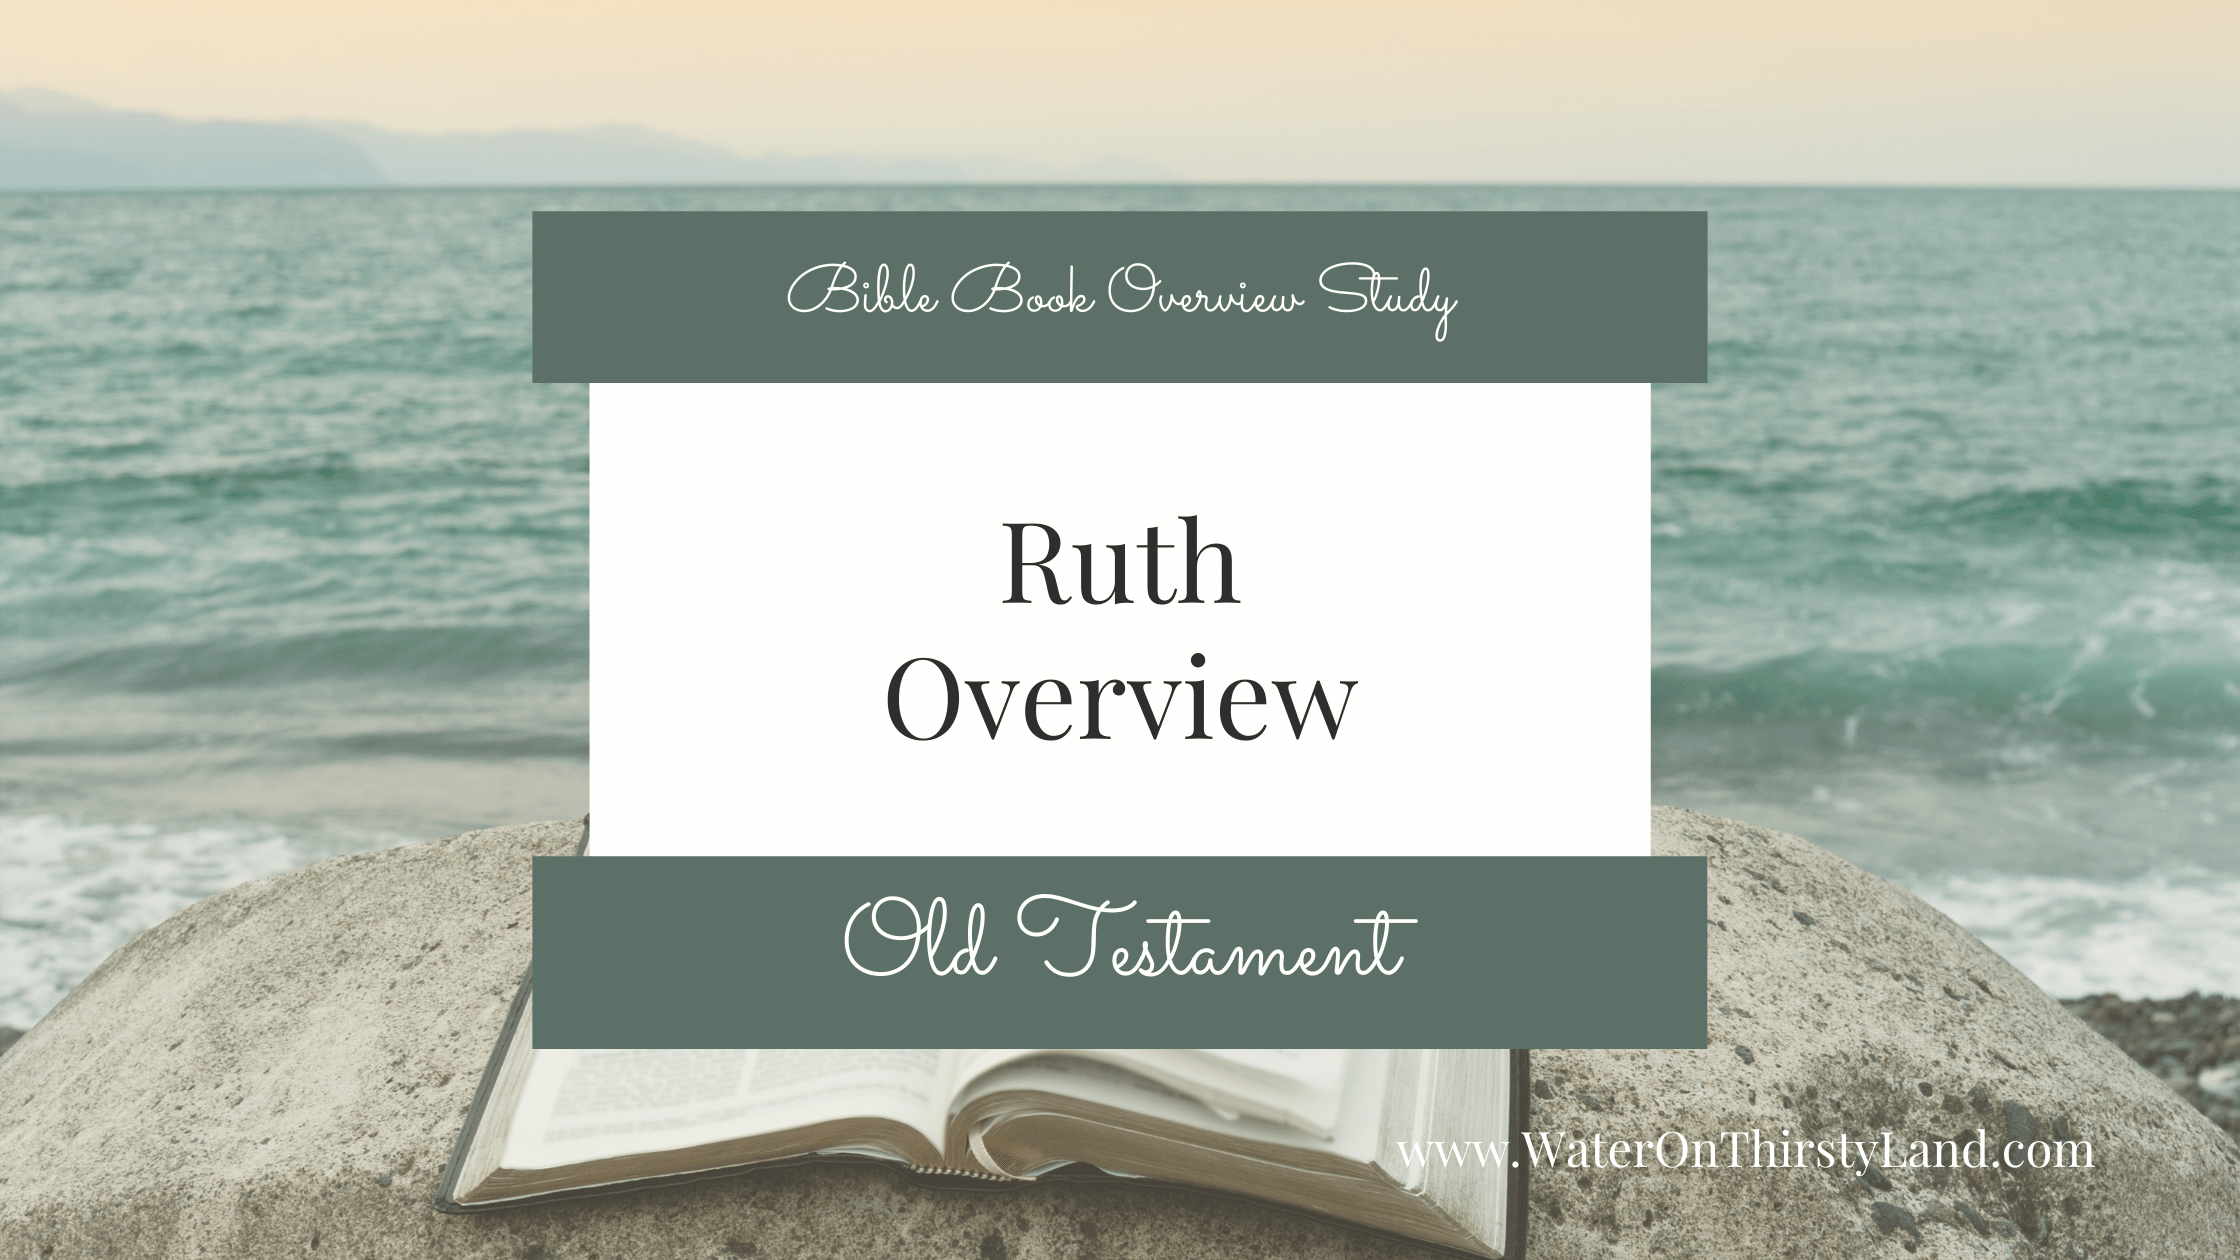 Ruth Overview